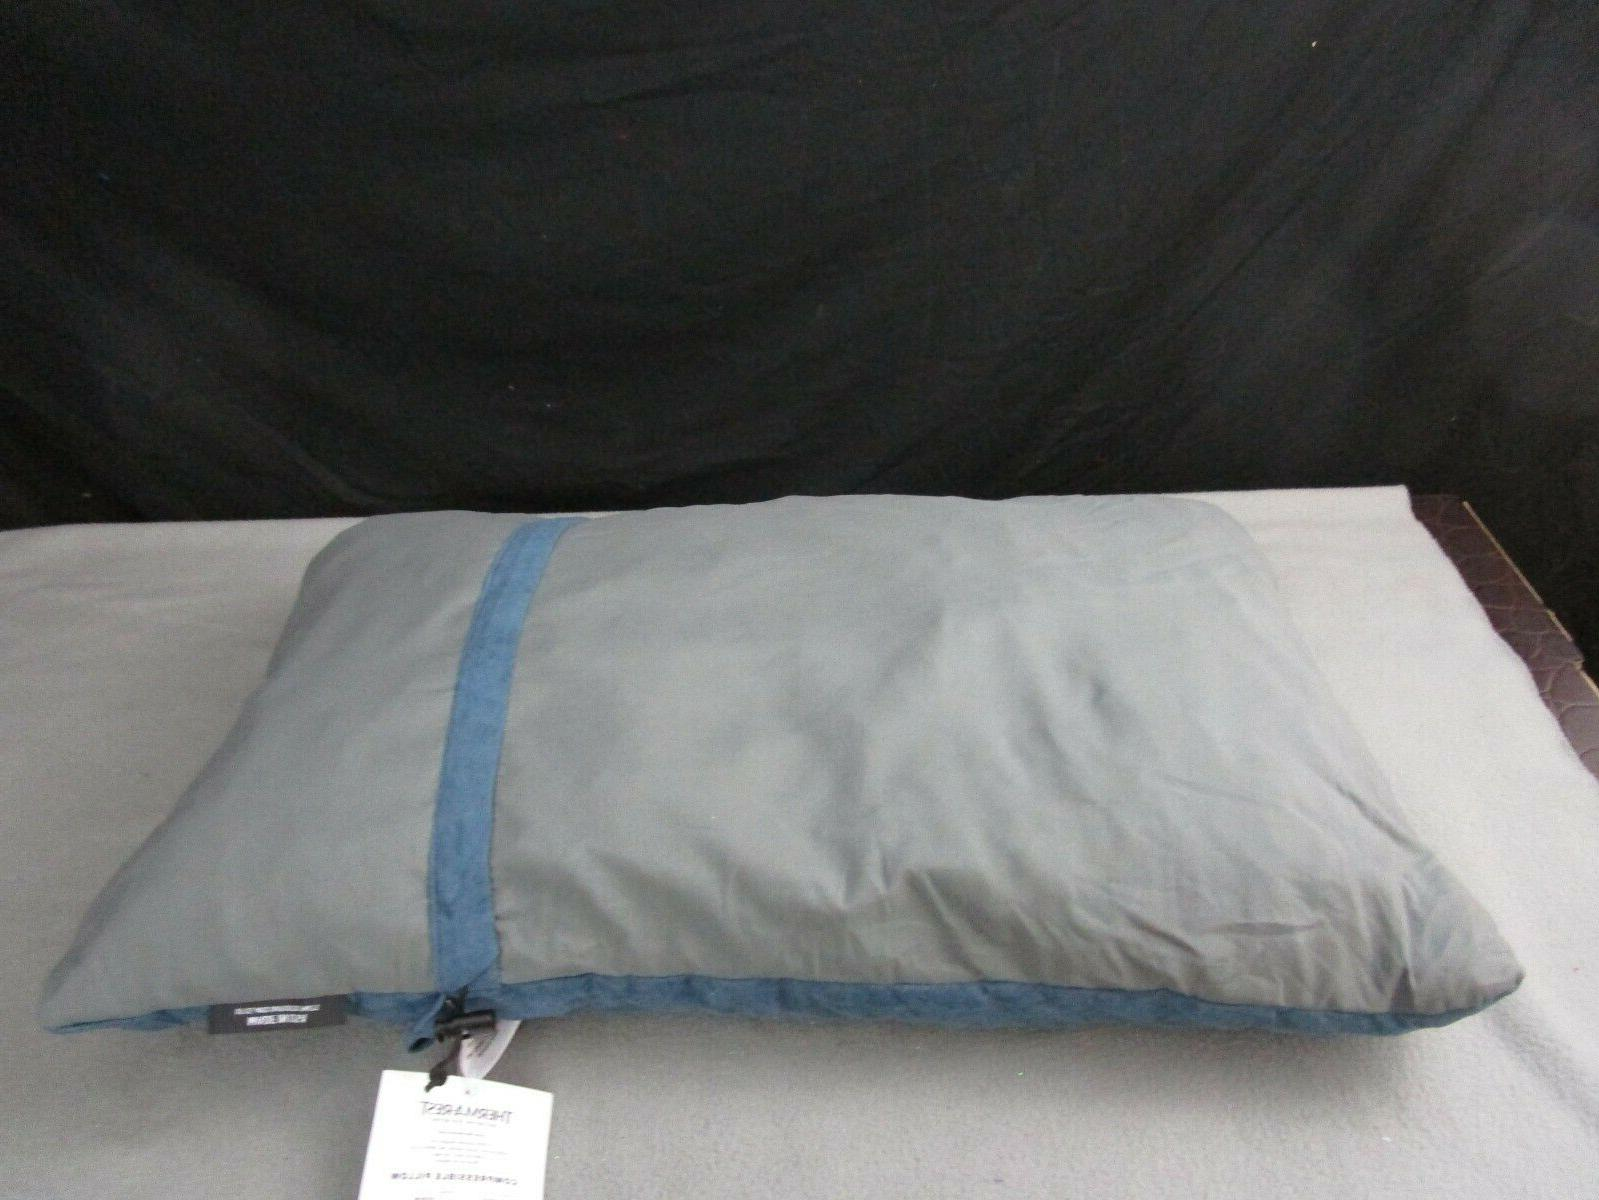 Therm-a-Rest Compressible for Camping, and Road Medium: